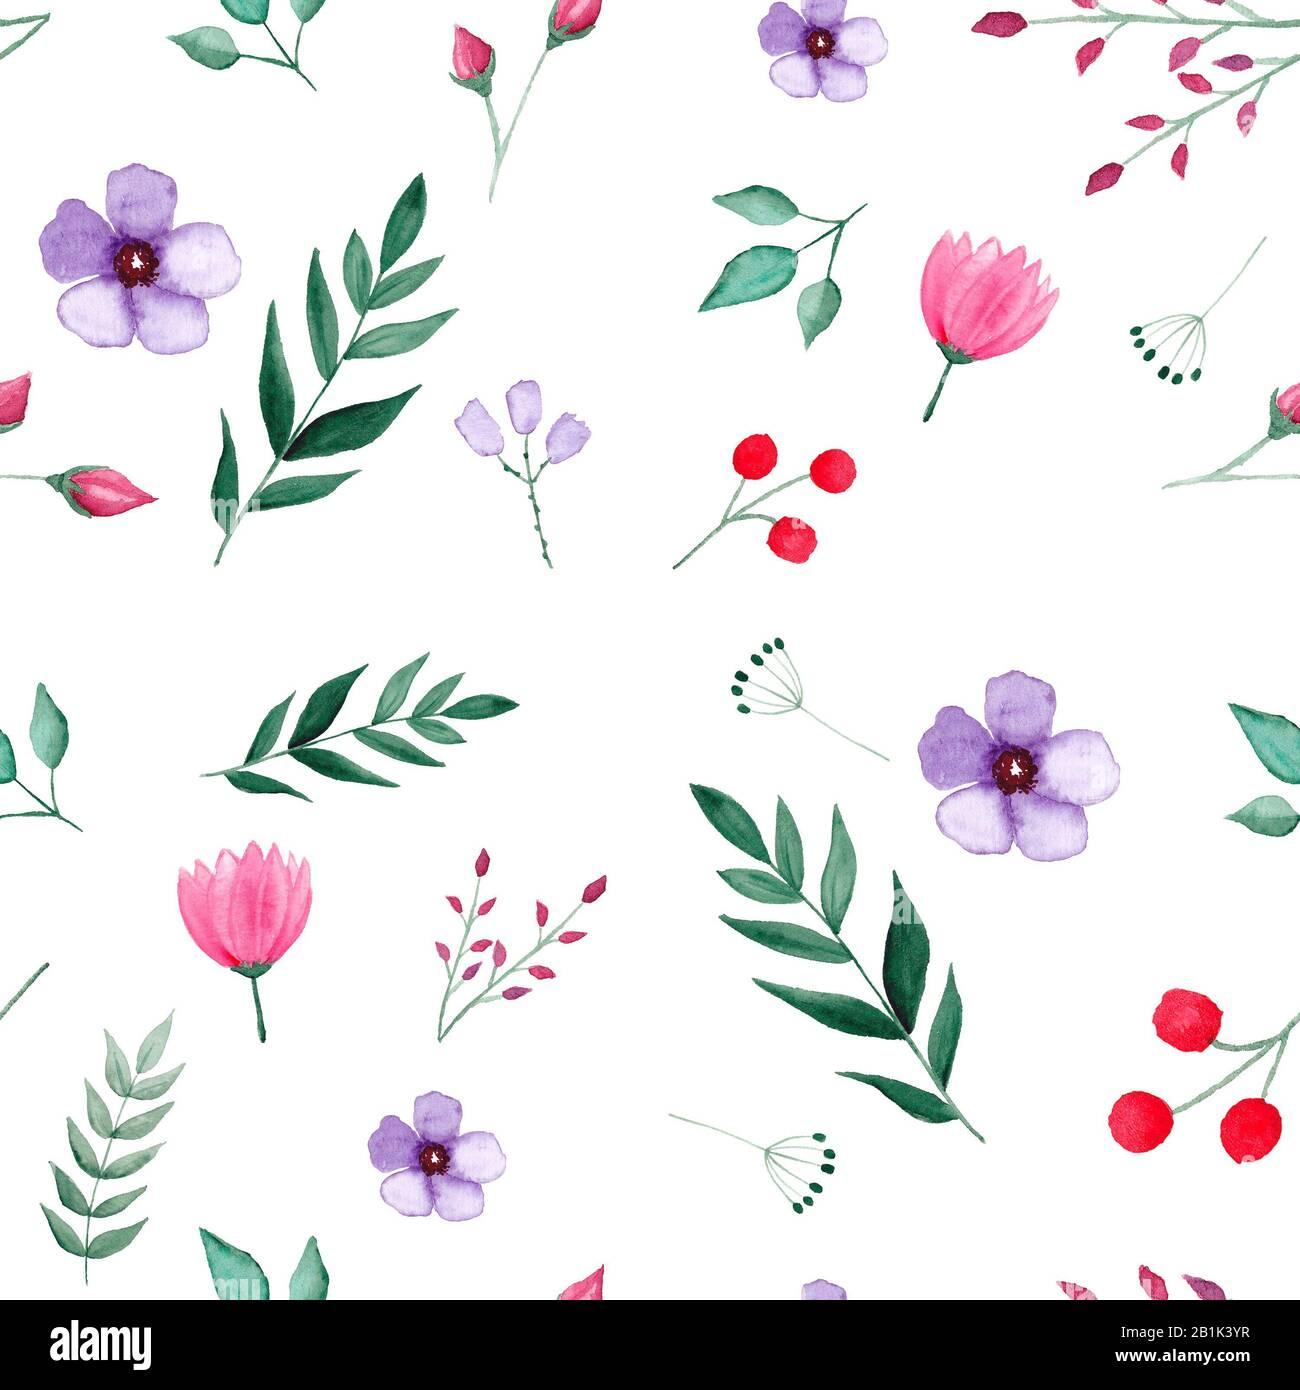 PNG Clipart Uryuaqtwtrumpet Vine Morning Glory Flower Painting Forget Color  Picker Image Provided - EpiCentro Festival